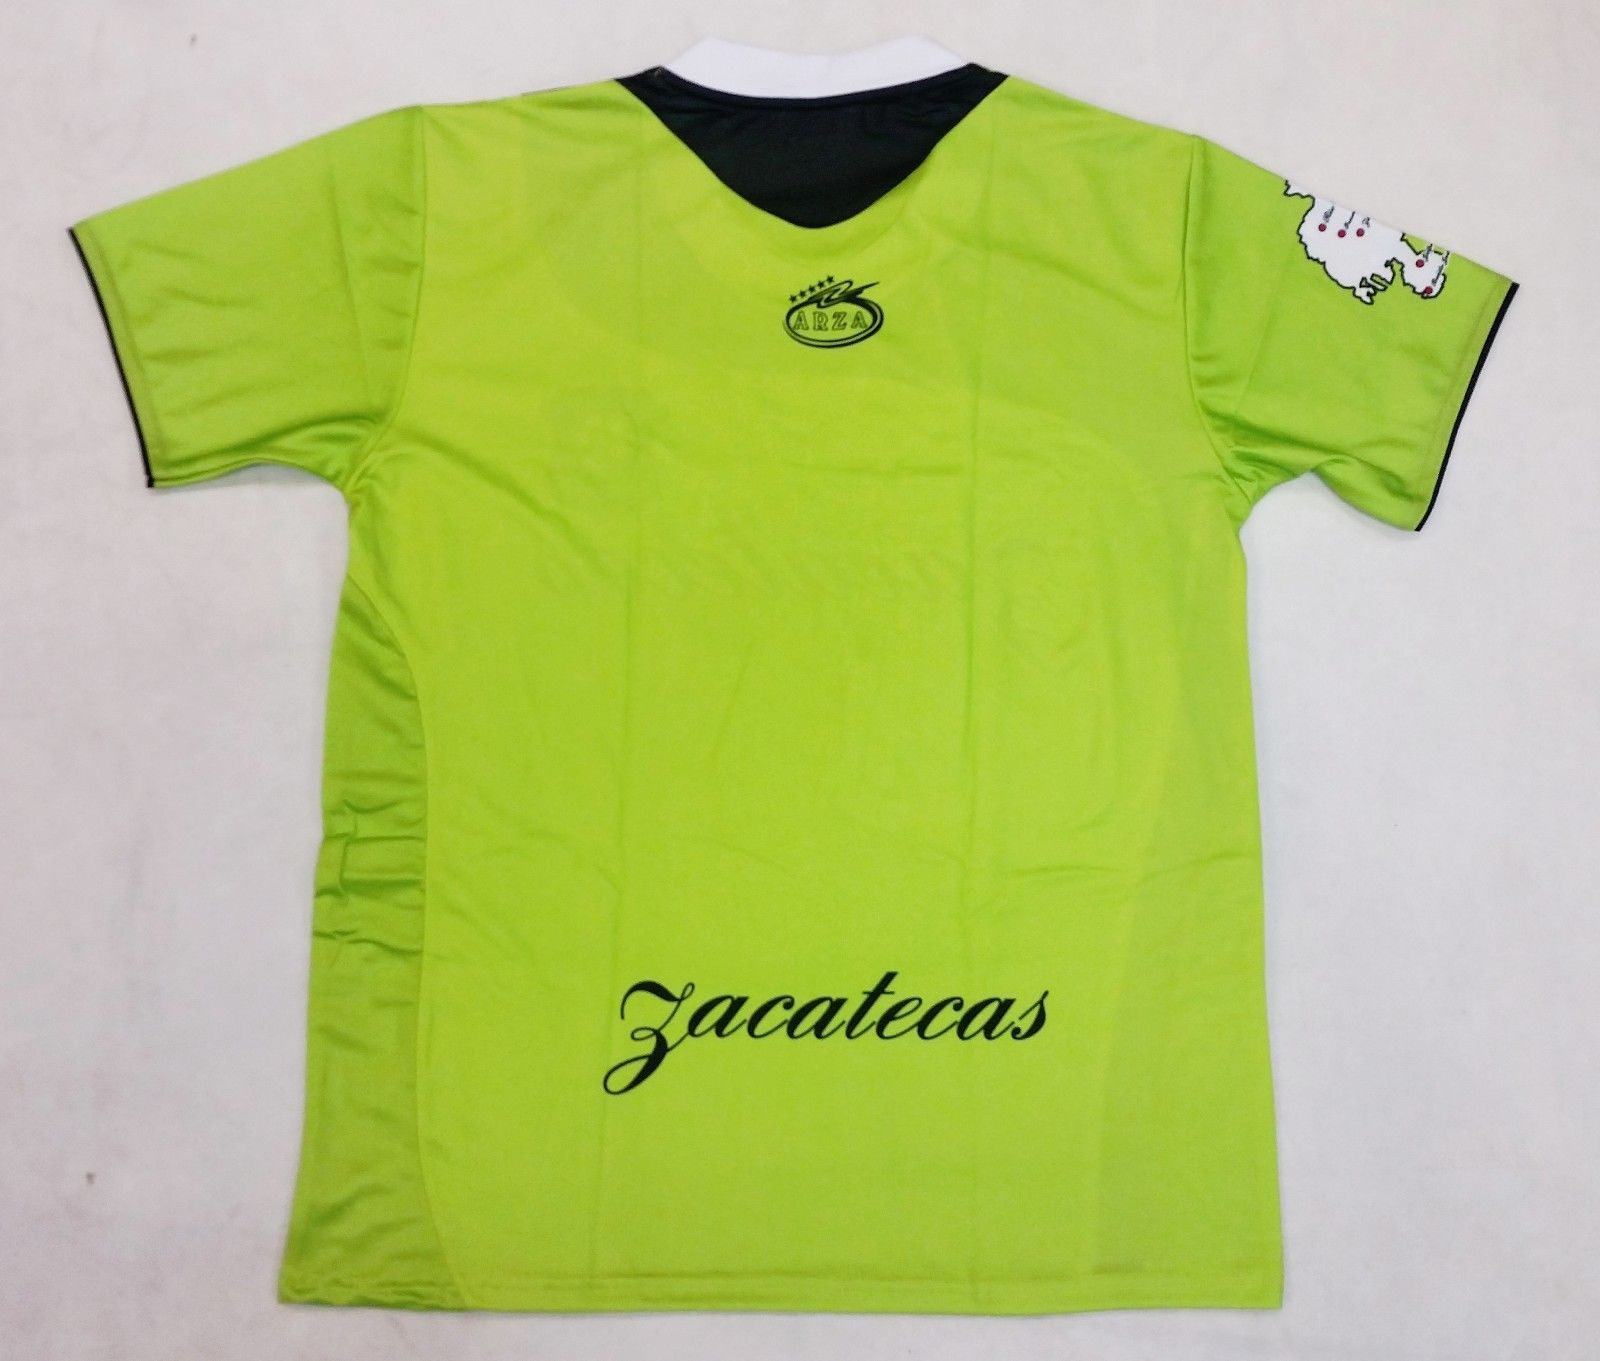 613d985db Zacatecas Mexico Soccer Jersey Color Green and Black Arza Design ...